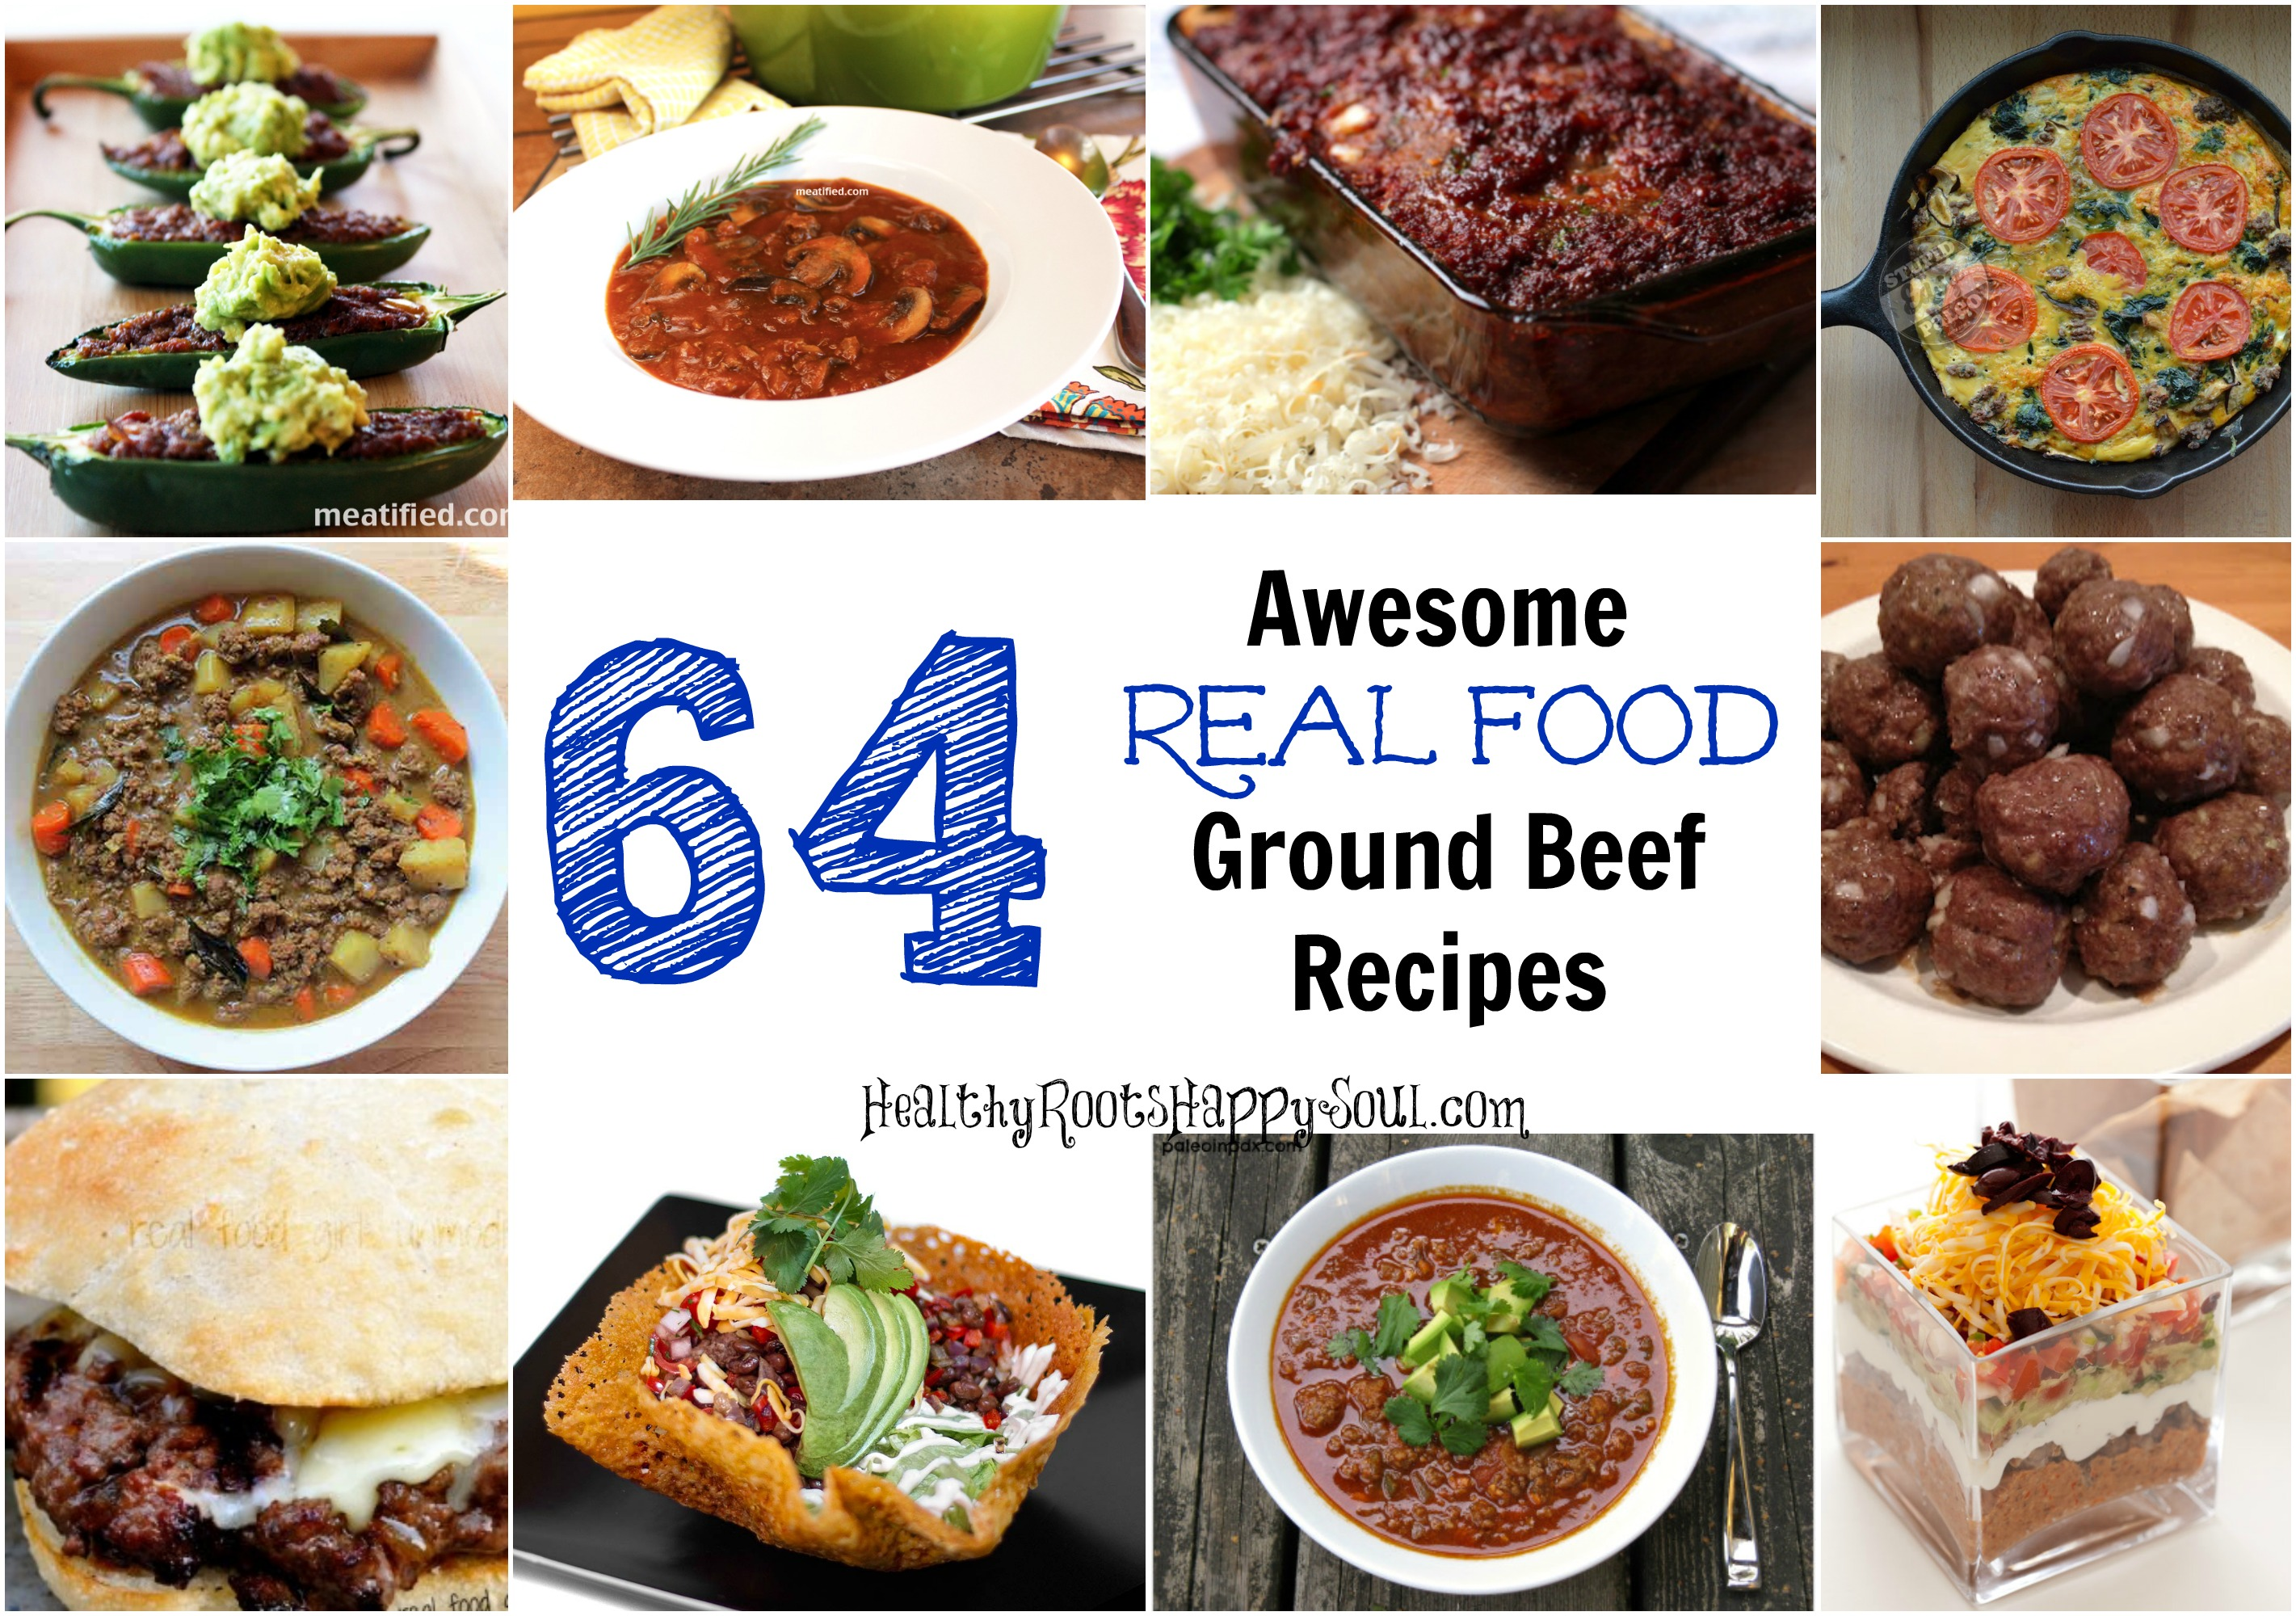 Naturally loriel 64 awesome real food ground beef recipes 64 ground beef recipes forumfinder Images